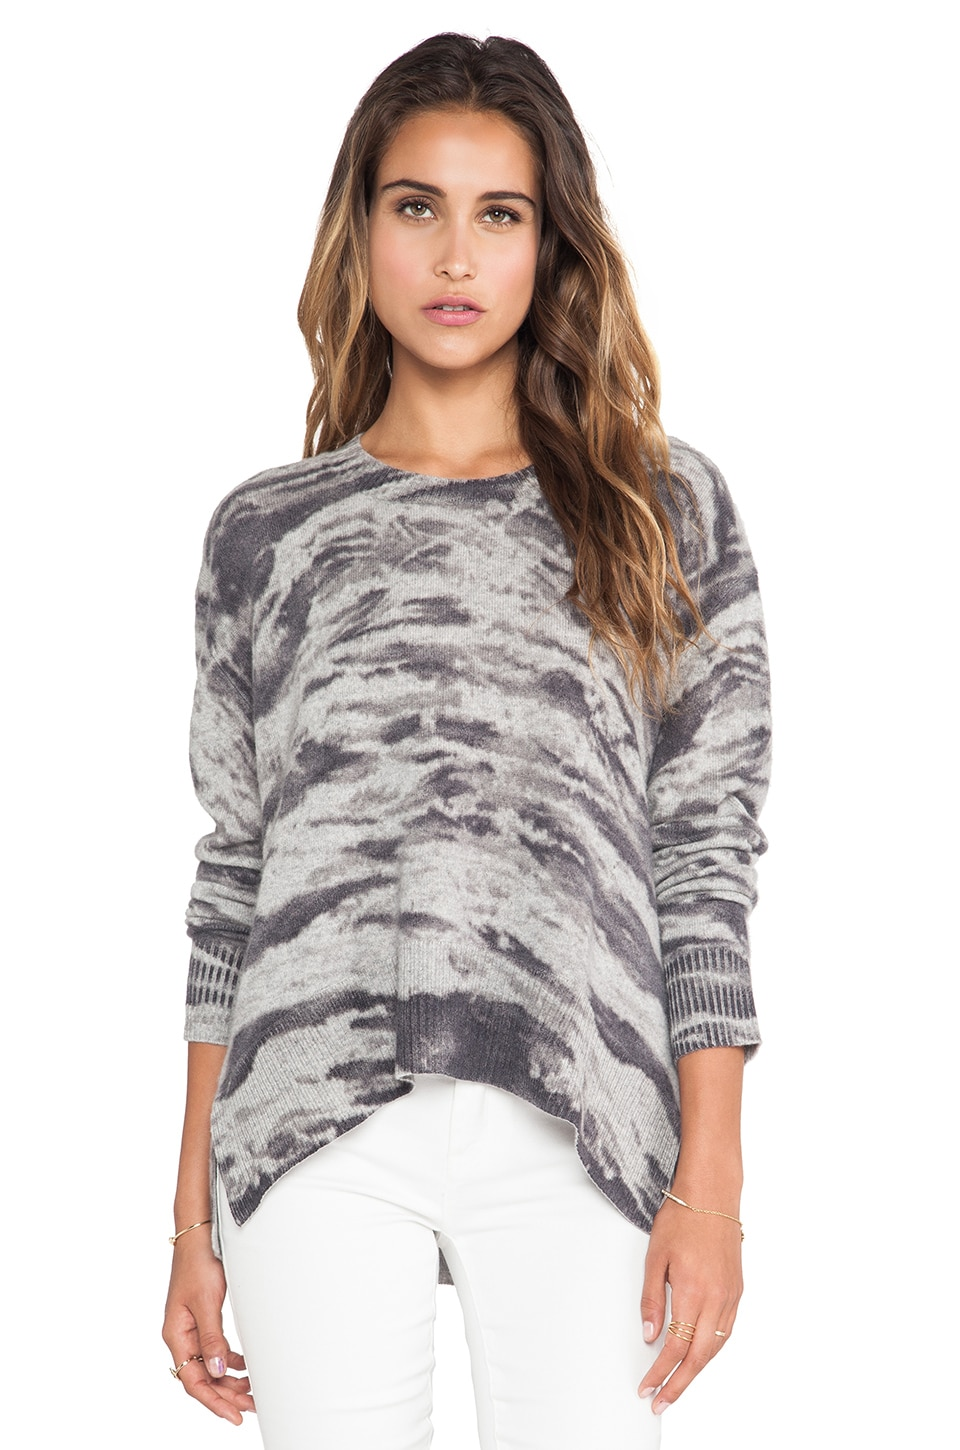 Enza Costa Cashmere Printed Loose Crew Sweater in Grey Costae